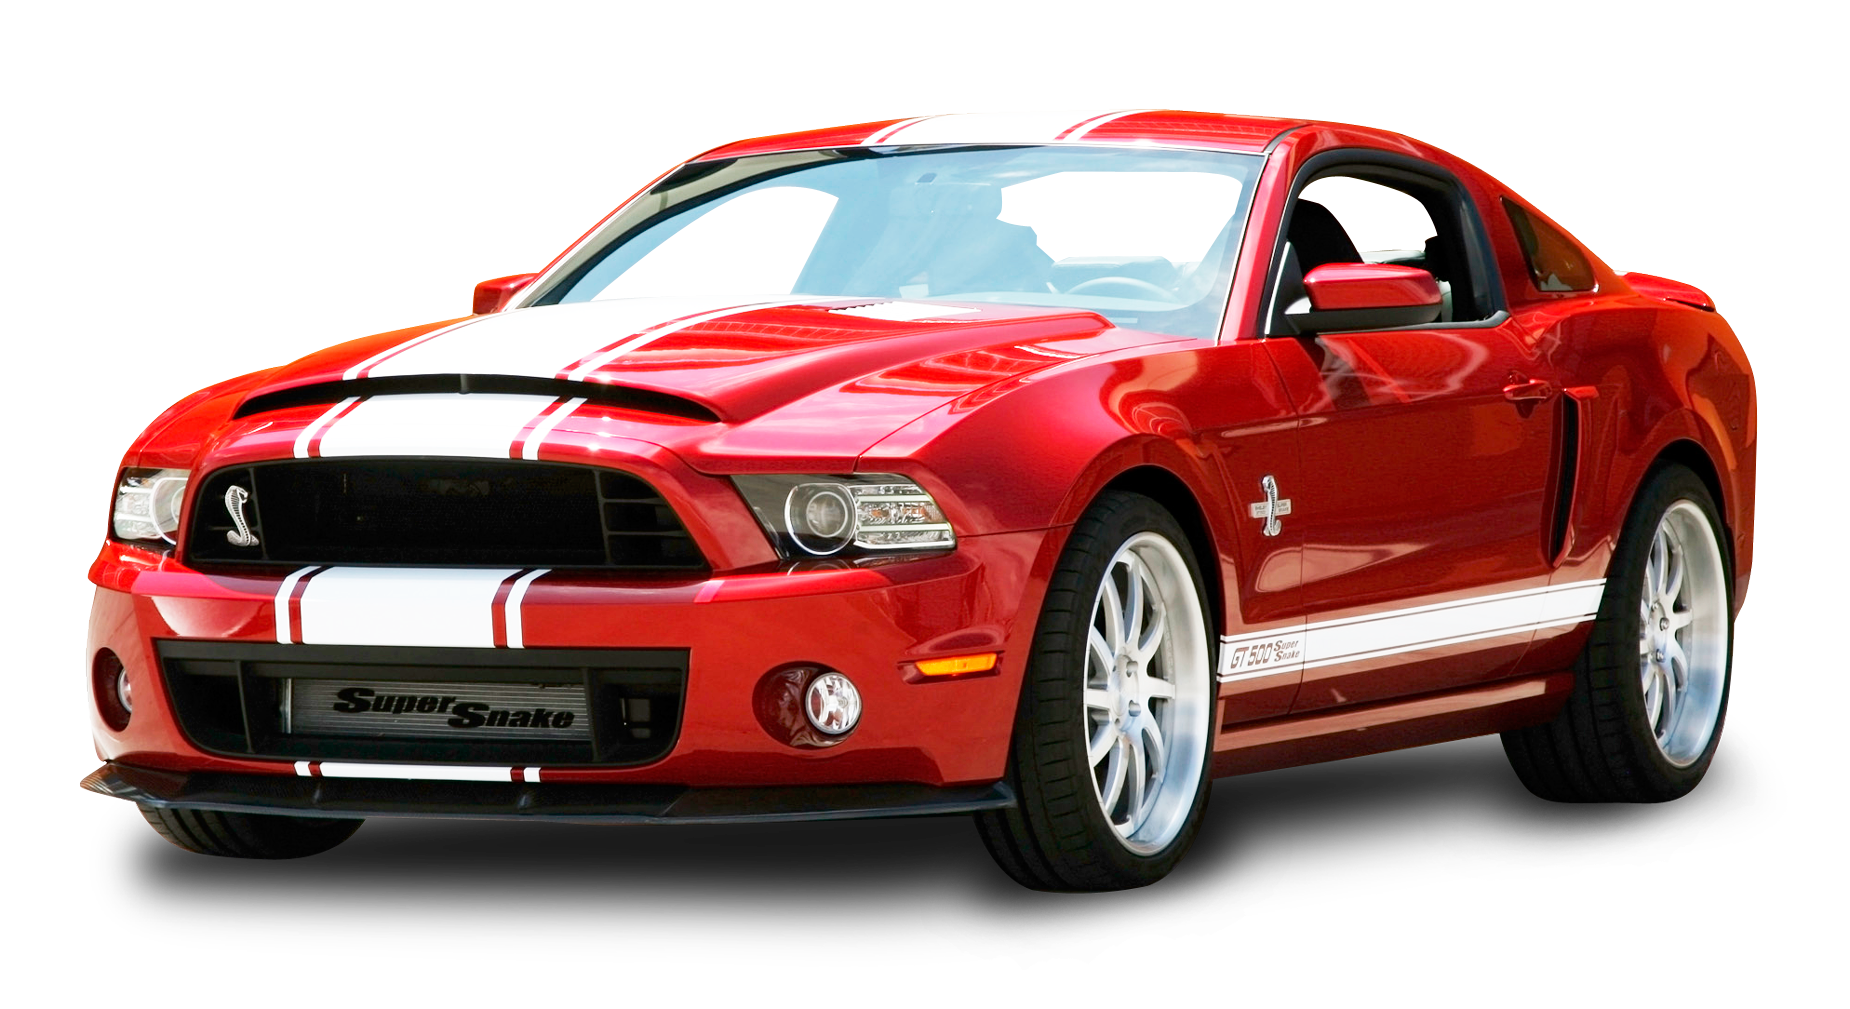 Red Ford Mustang Shelby GT500 Snake Car